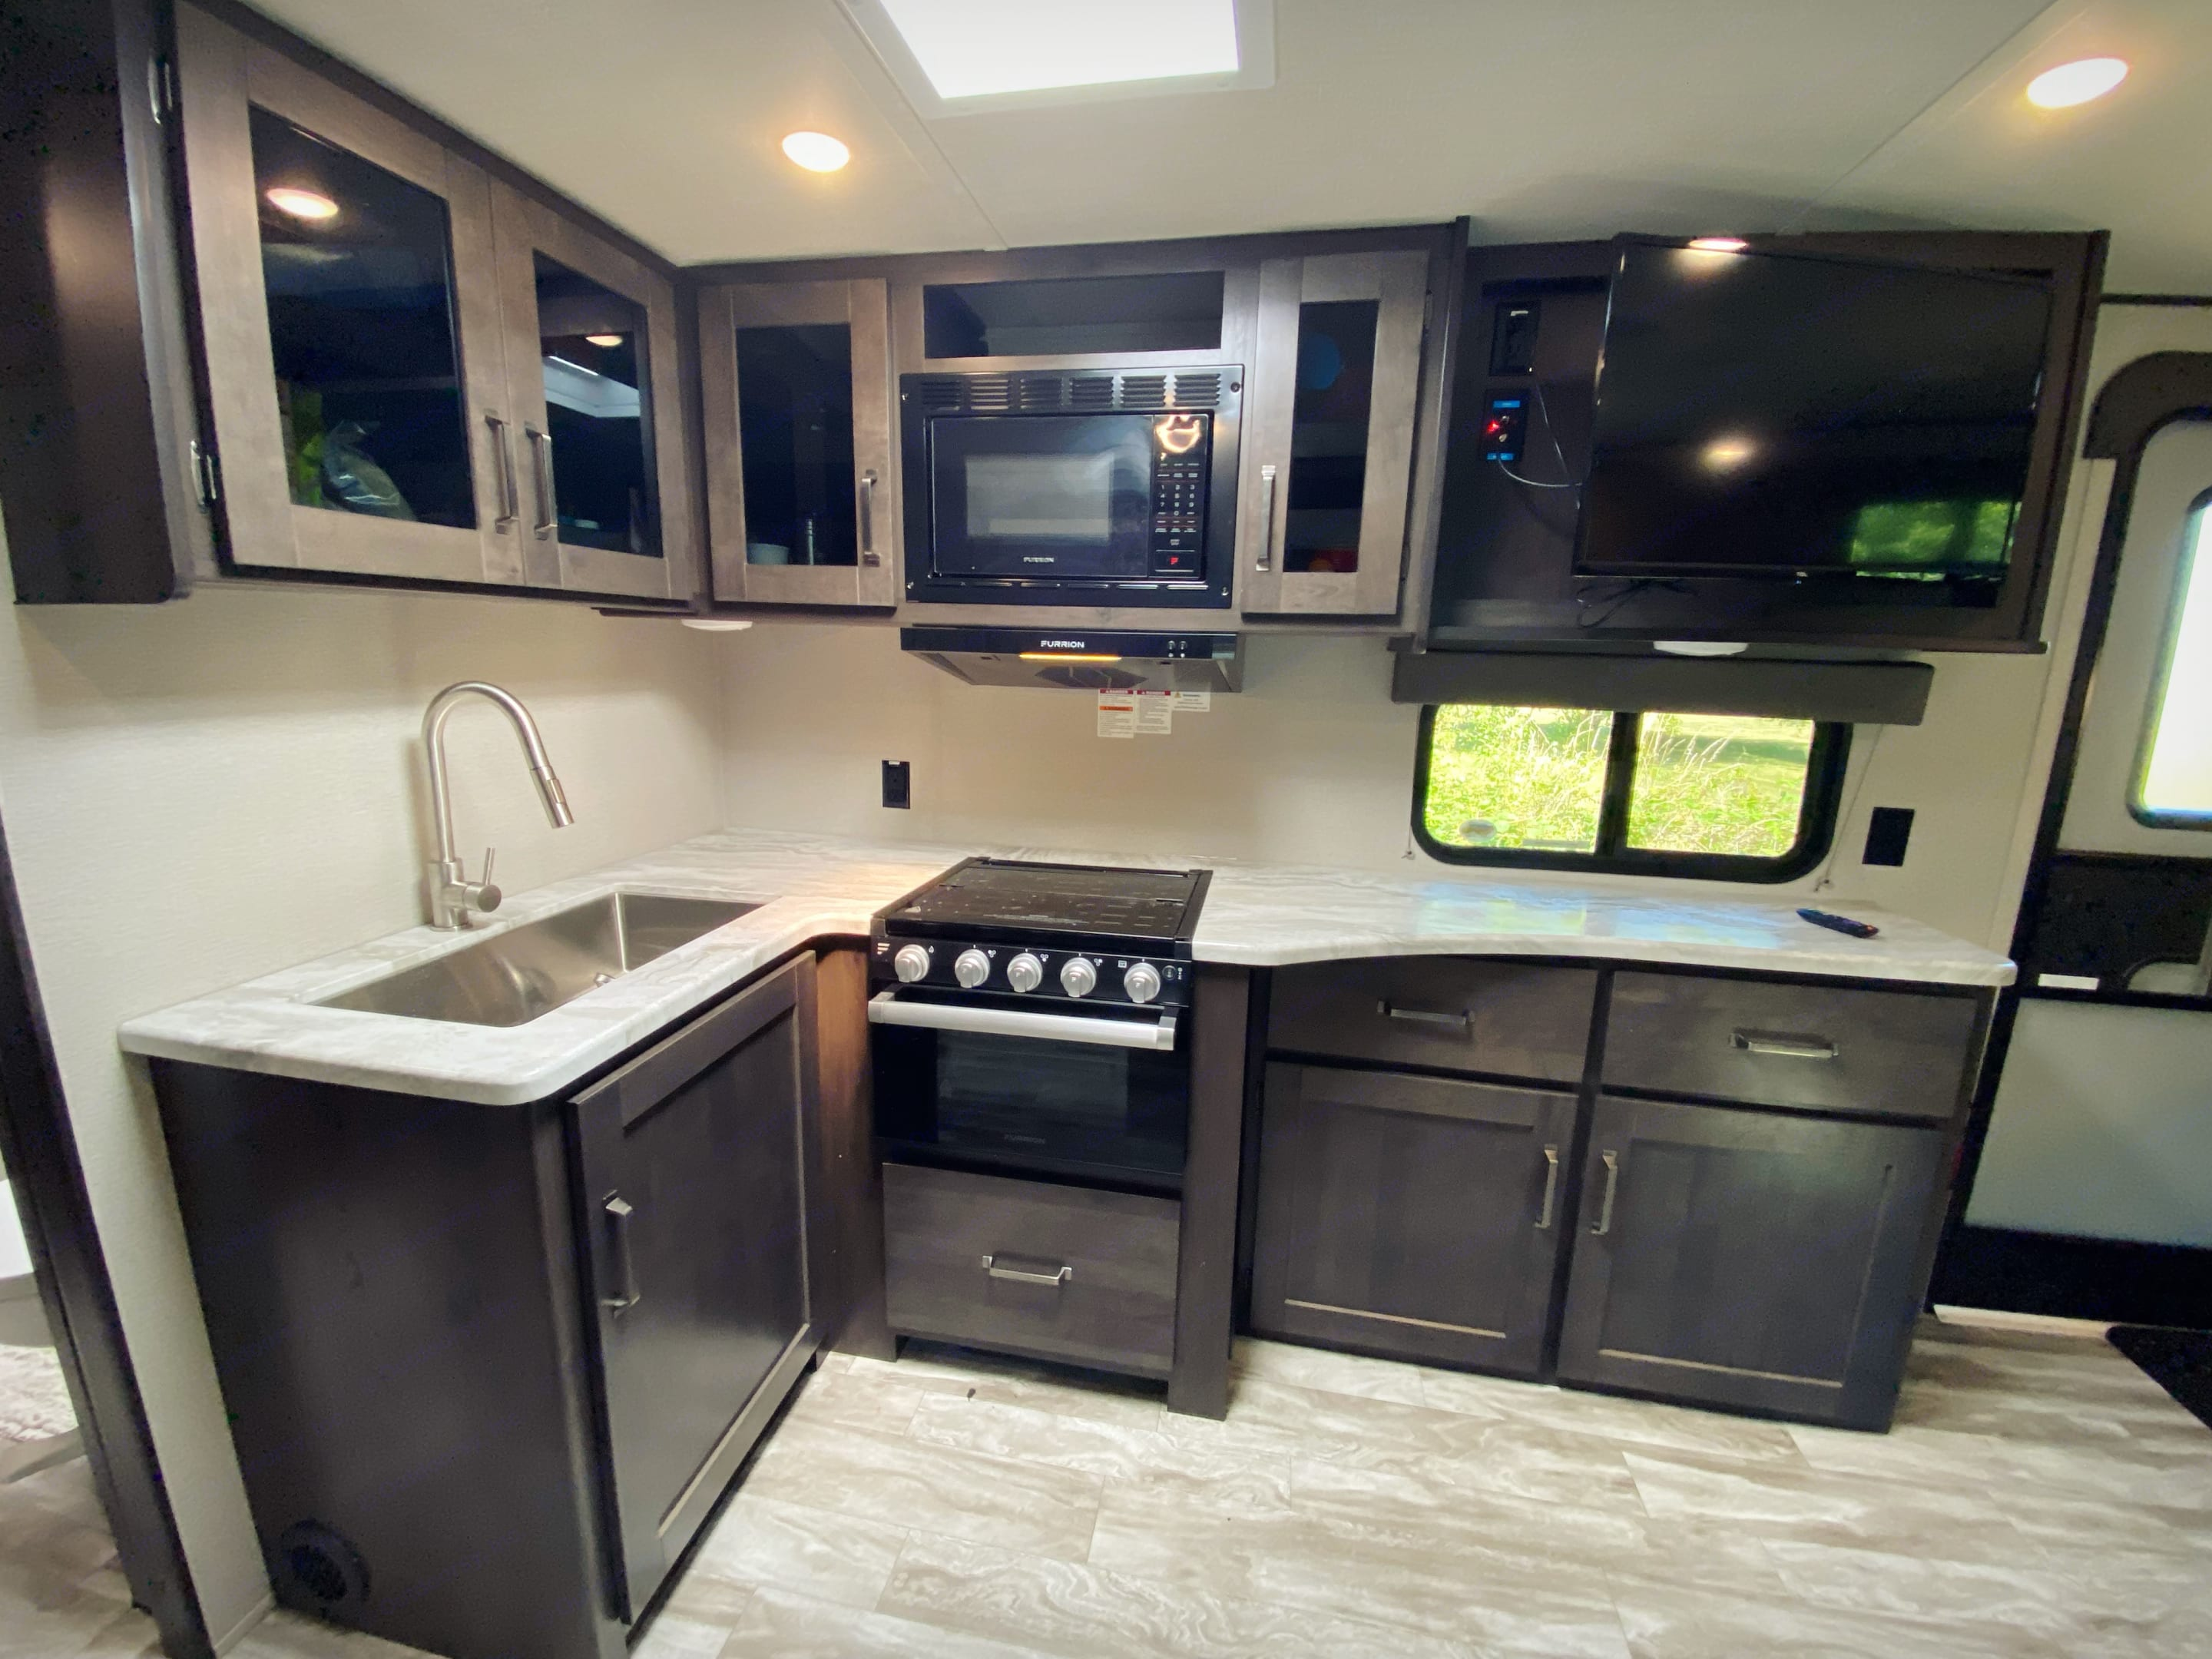 Kitchen sink and counter/cabinet  area. Grand Design Other 2021